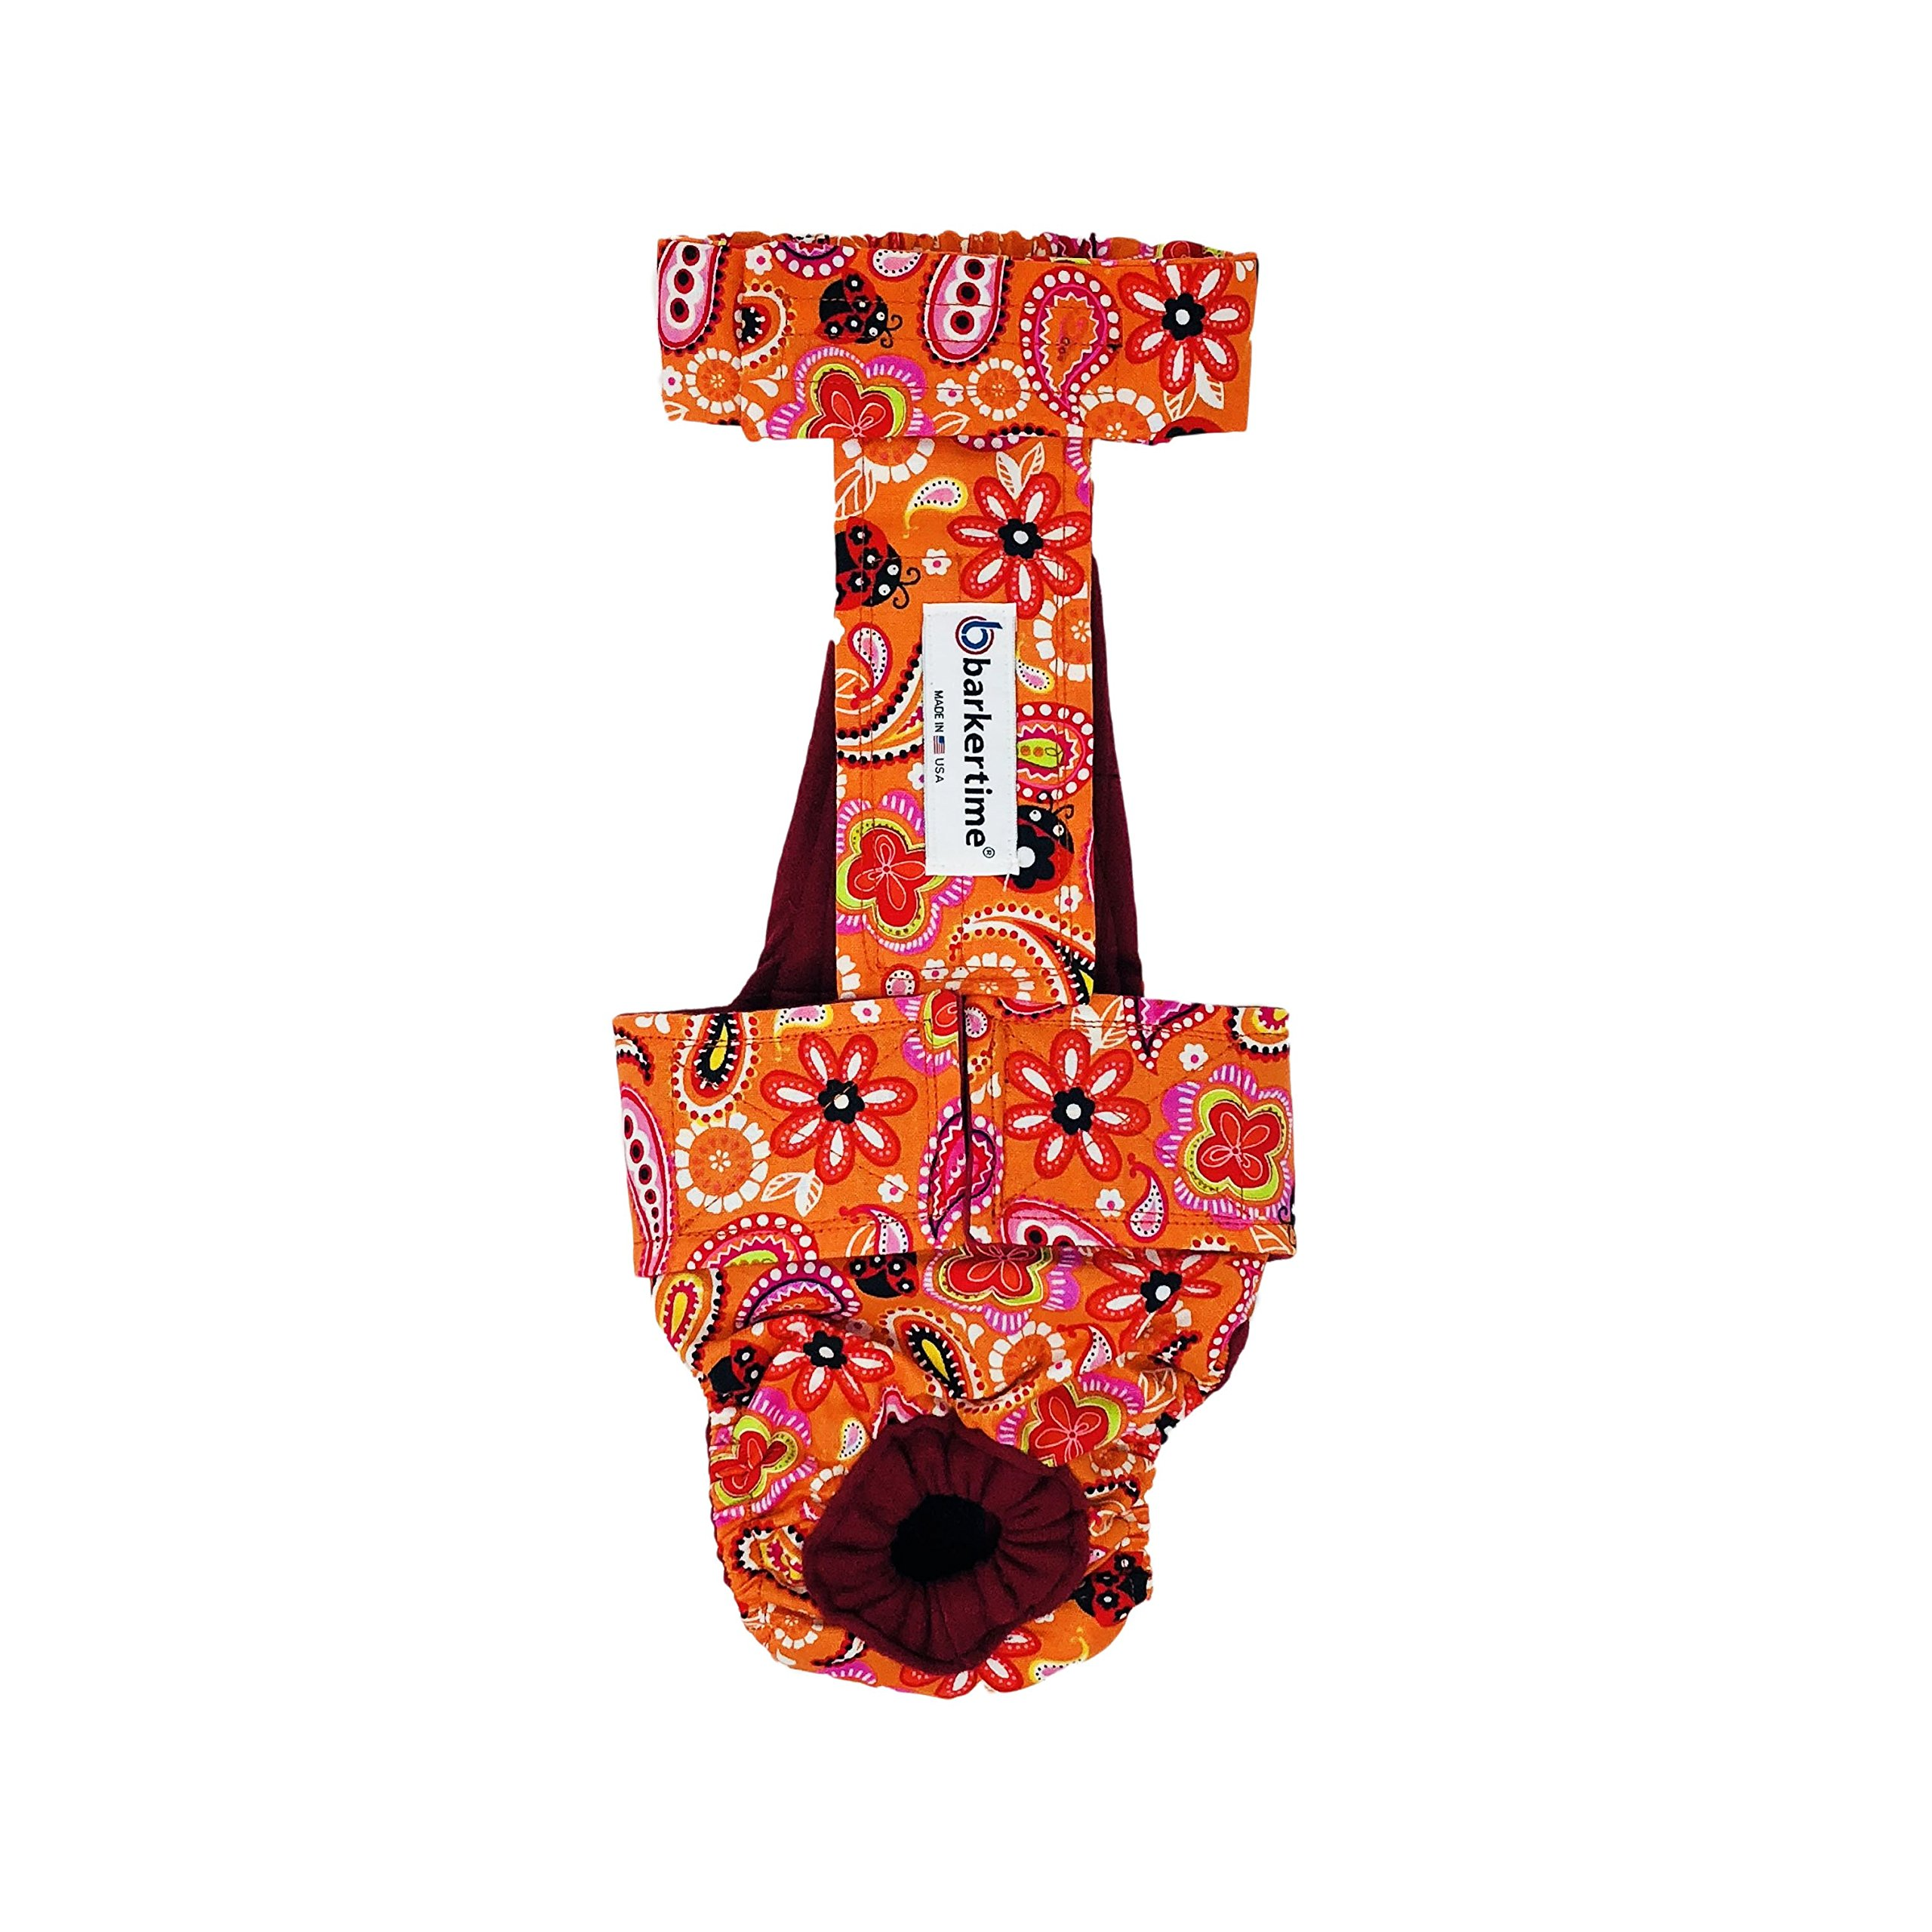 Dog Diaper Overall - Made in USA - Paisley Flower on Orange Escape-Proof Washable Dog Diaper Overall, XXL, Without Tail Hole for Dog Incontinence, Marking, Housetraining and Females in Heat